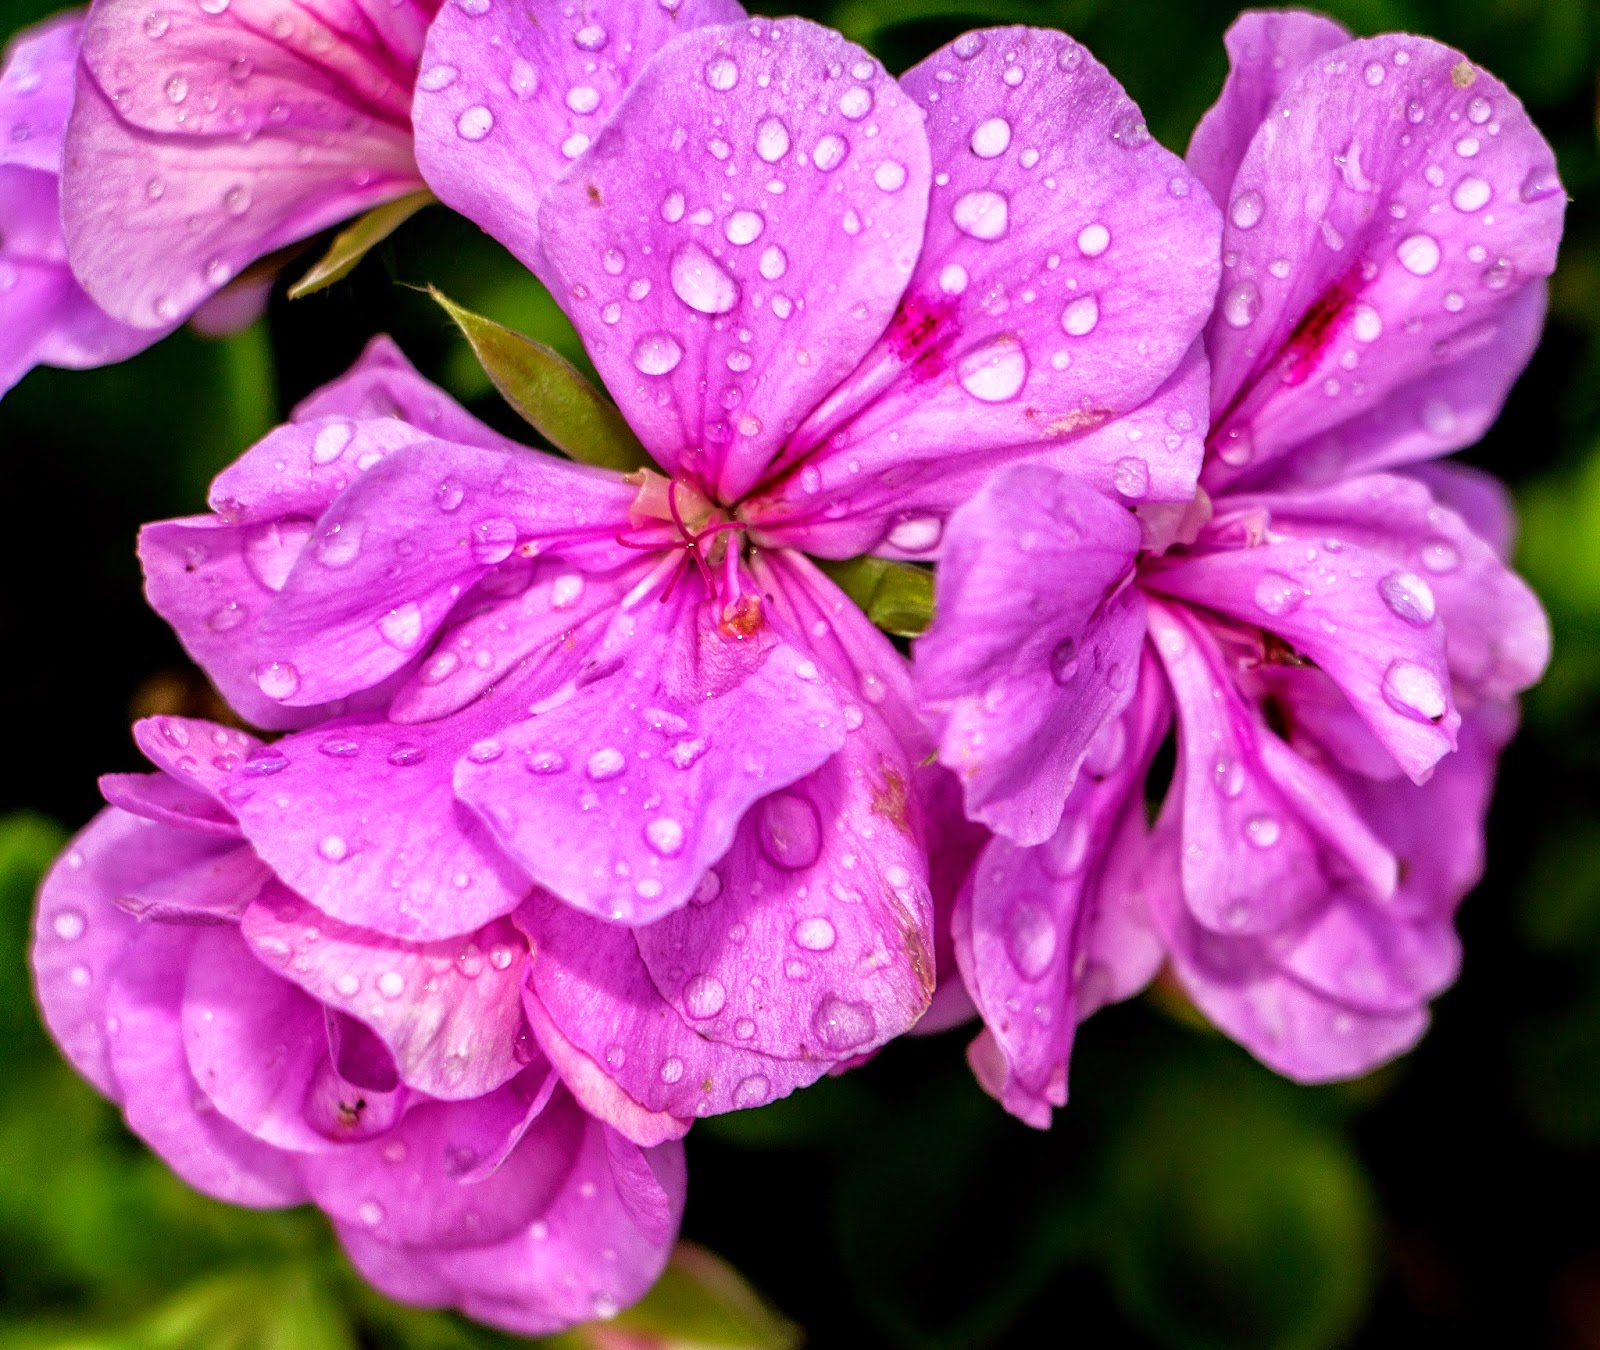 Flowers In The Rain - Canon EOS 700D / EF-S 18-135mm IS STM Lens